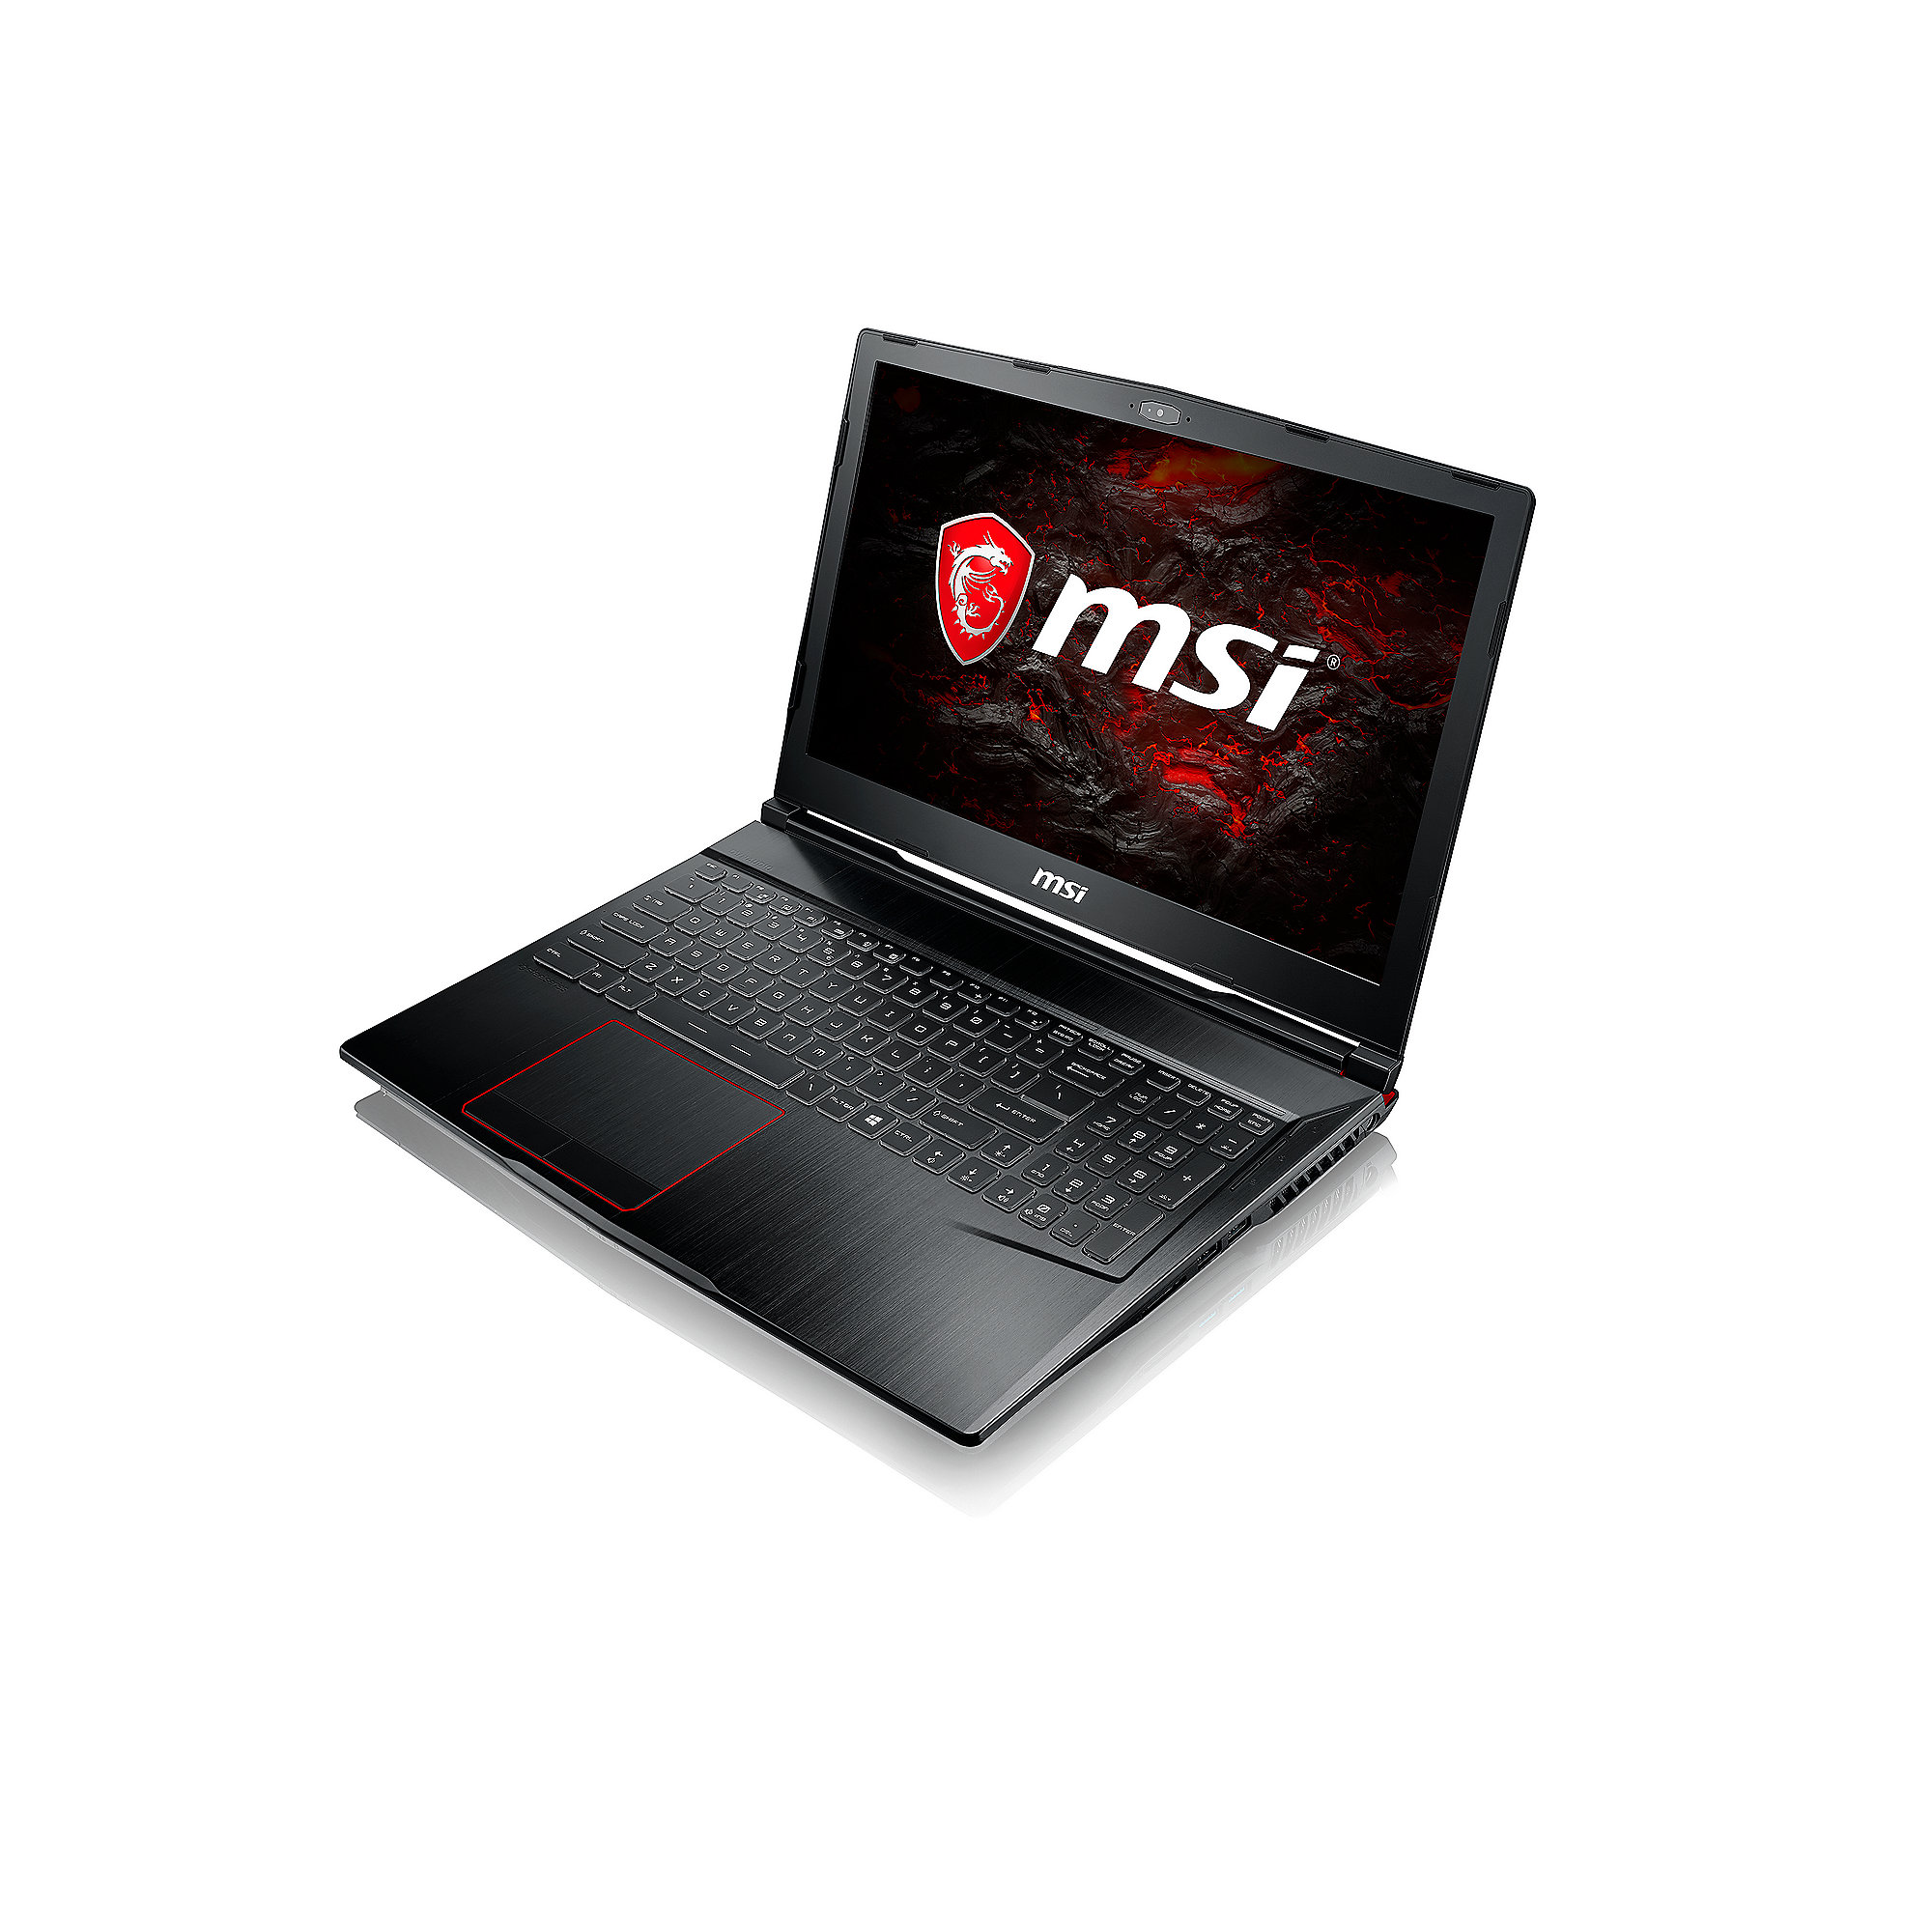 "MSI GE63VR 7RE-033 Raider-i7-7700HQ 16GB/1TB HDD+256GB SSD 15"" FHD GTX 1060 W10"